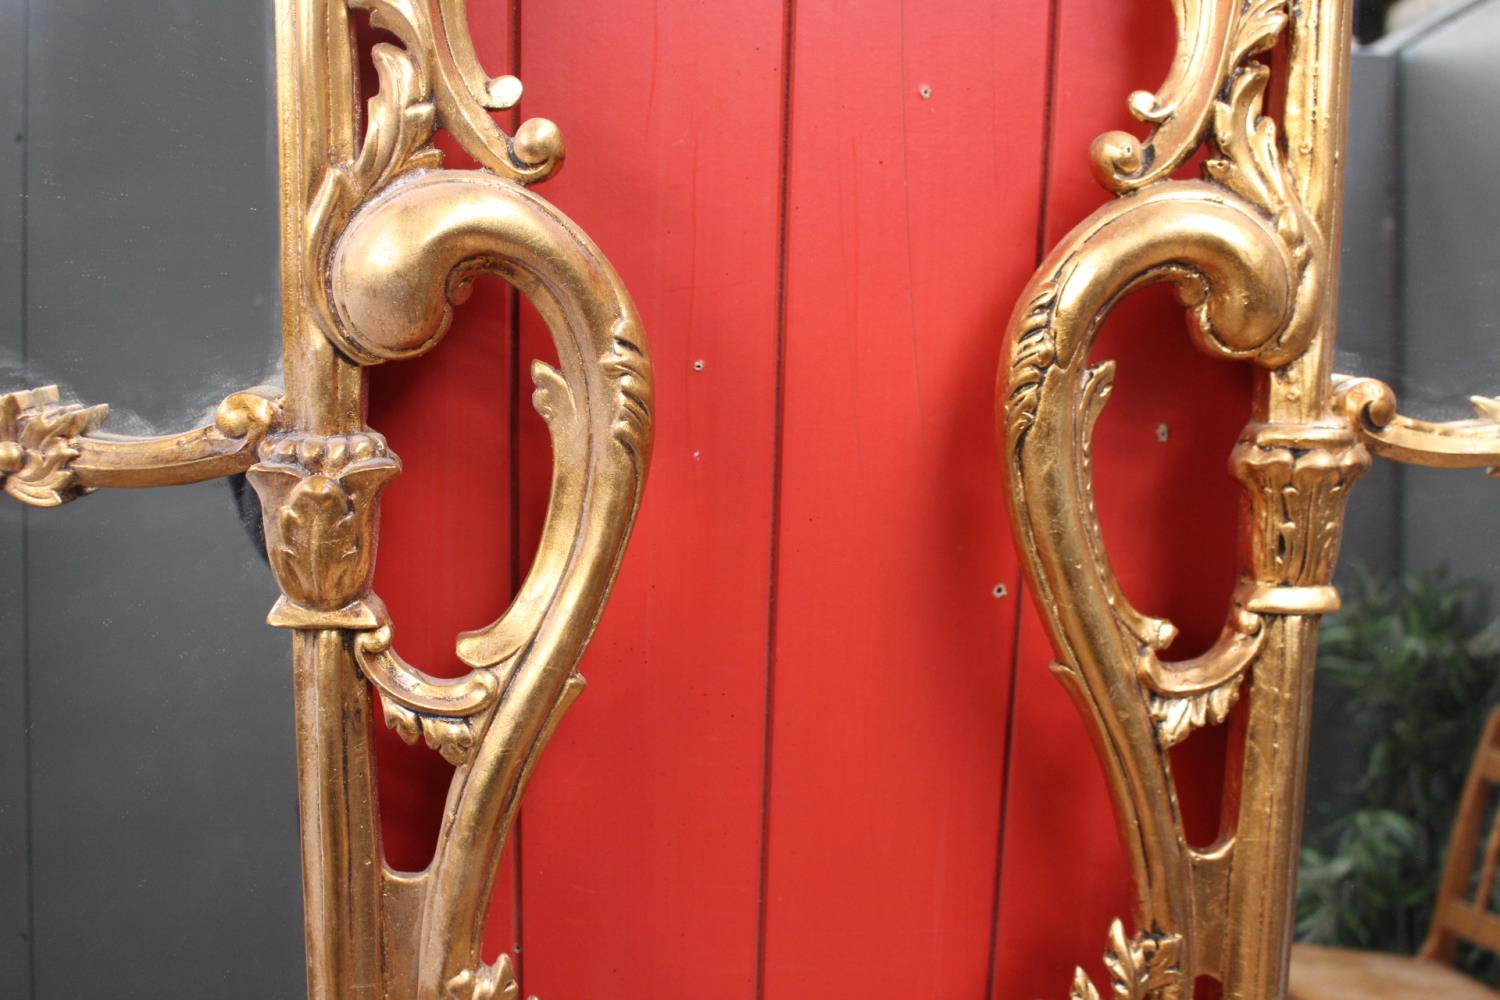 Decorative giltwood wall mirror - Image 4 of 4